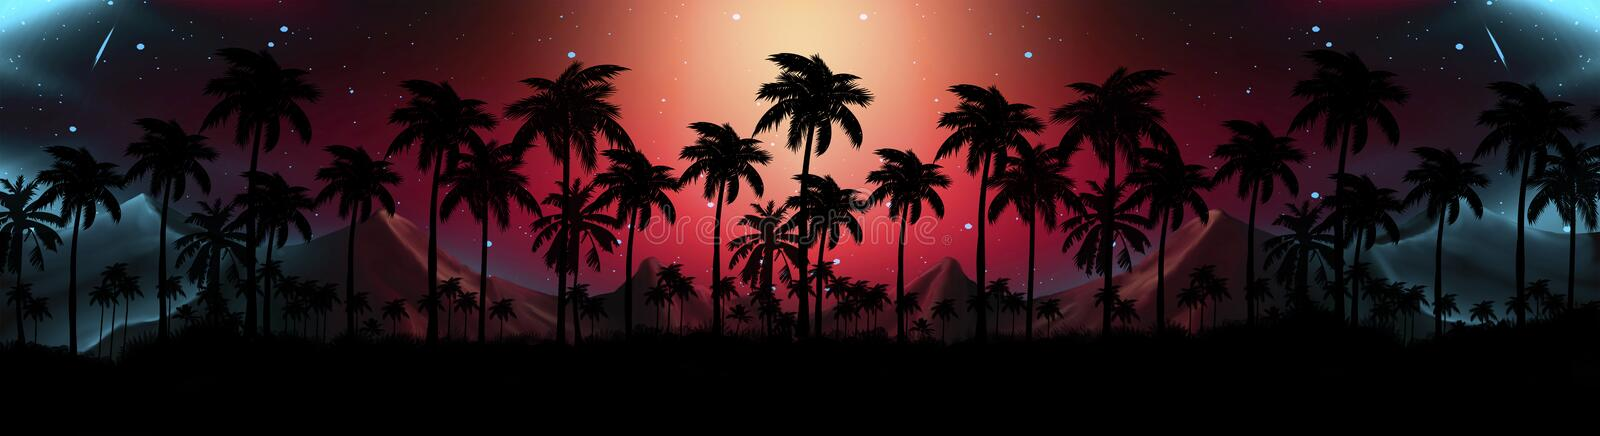 Night landscape with stars, sunset, stars. Silhouette coconut palm trees. Vintage tone. Lights of the night city, neon, coast vector illustration